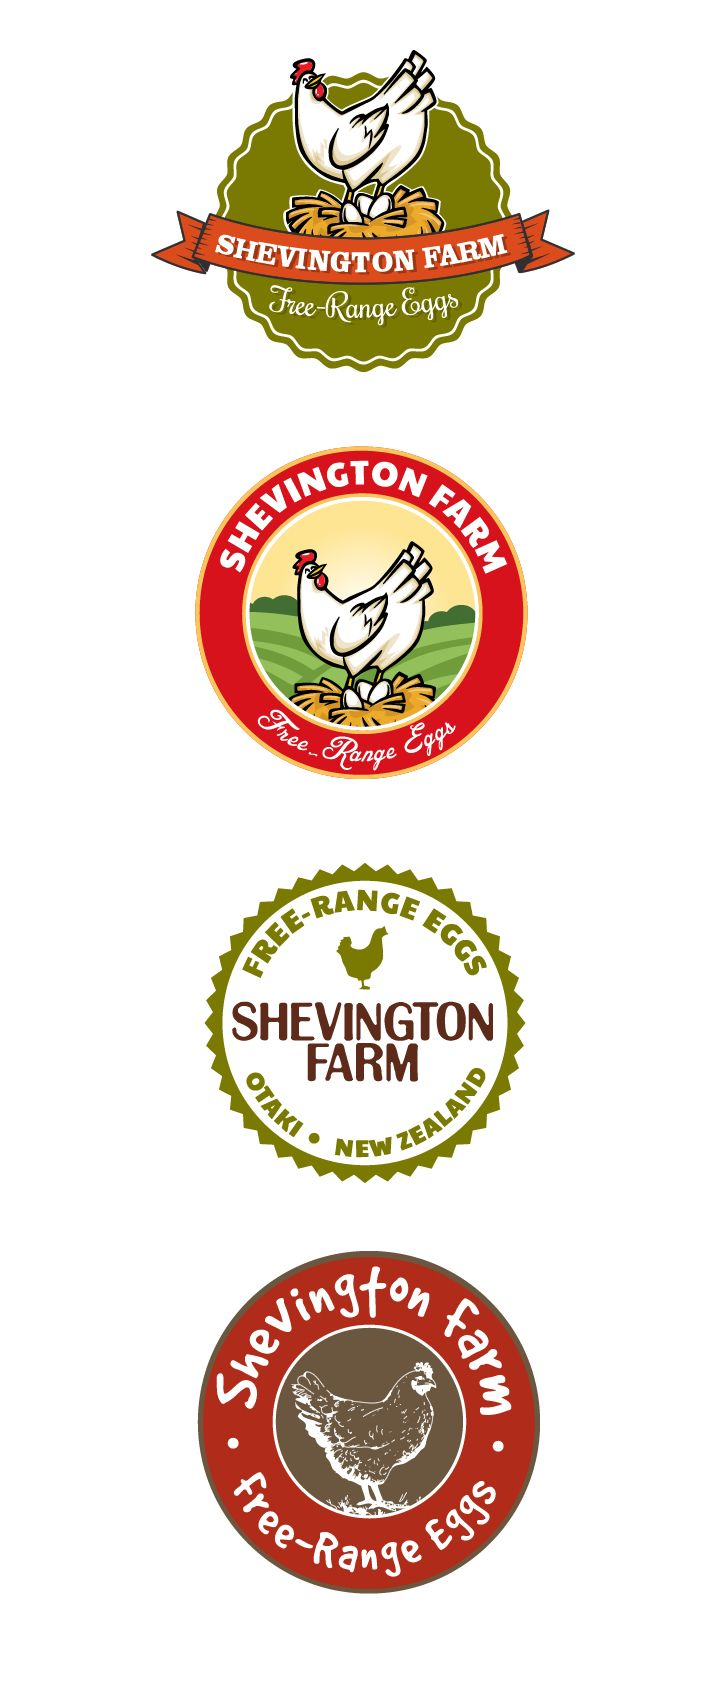 Shevington Farm